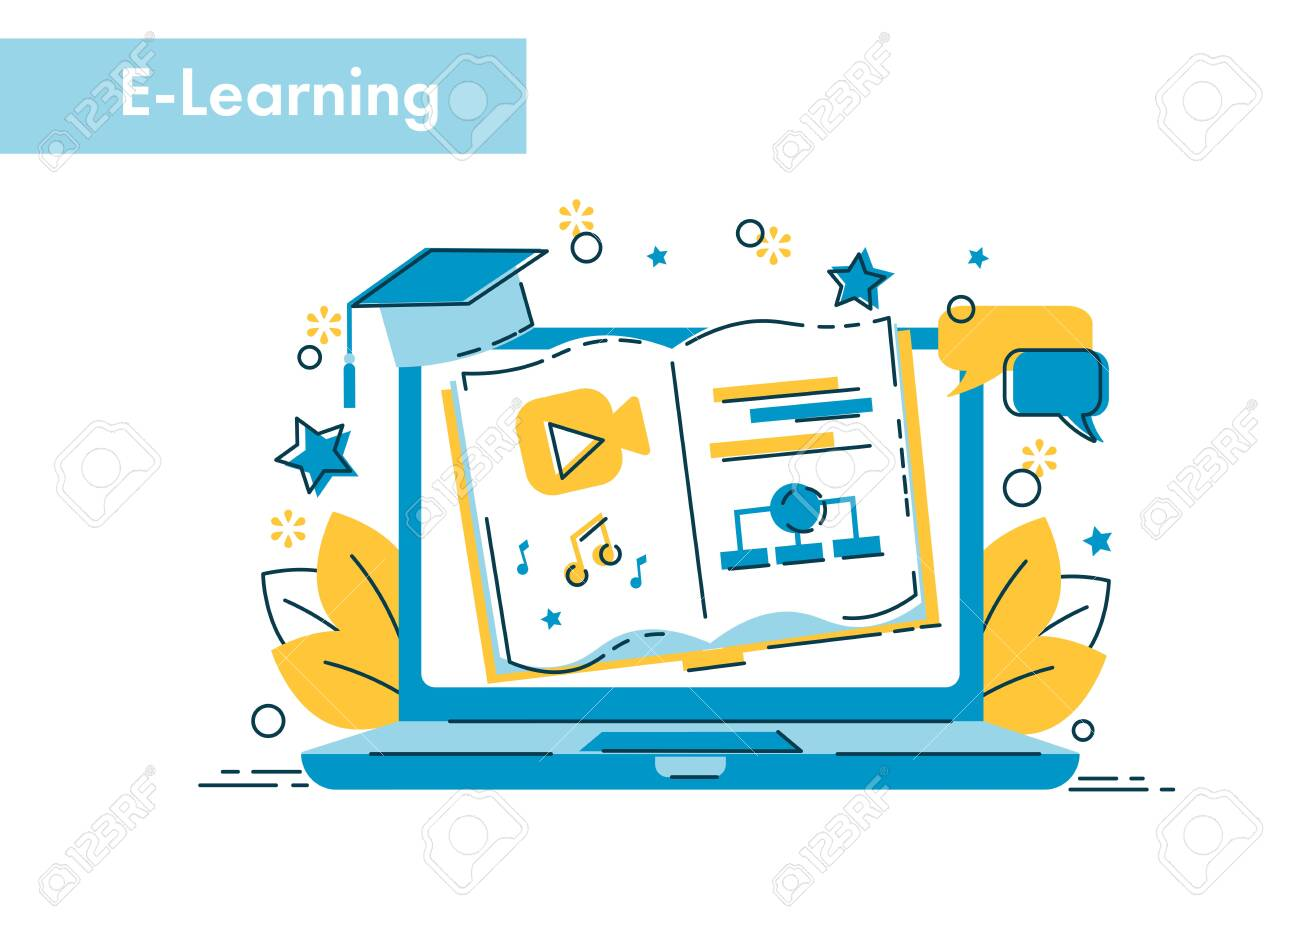 E Learning Concept Online Education Illustration For Webinar Royalty Free Cliparts Vectors And Stock Illustration Image 122847554